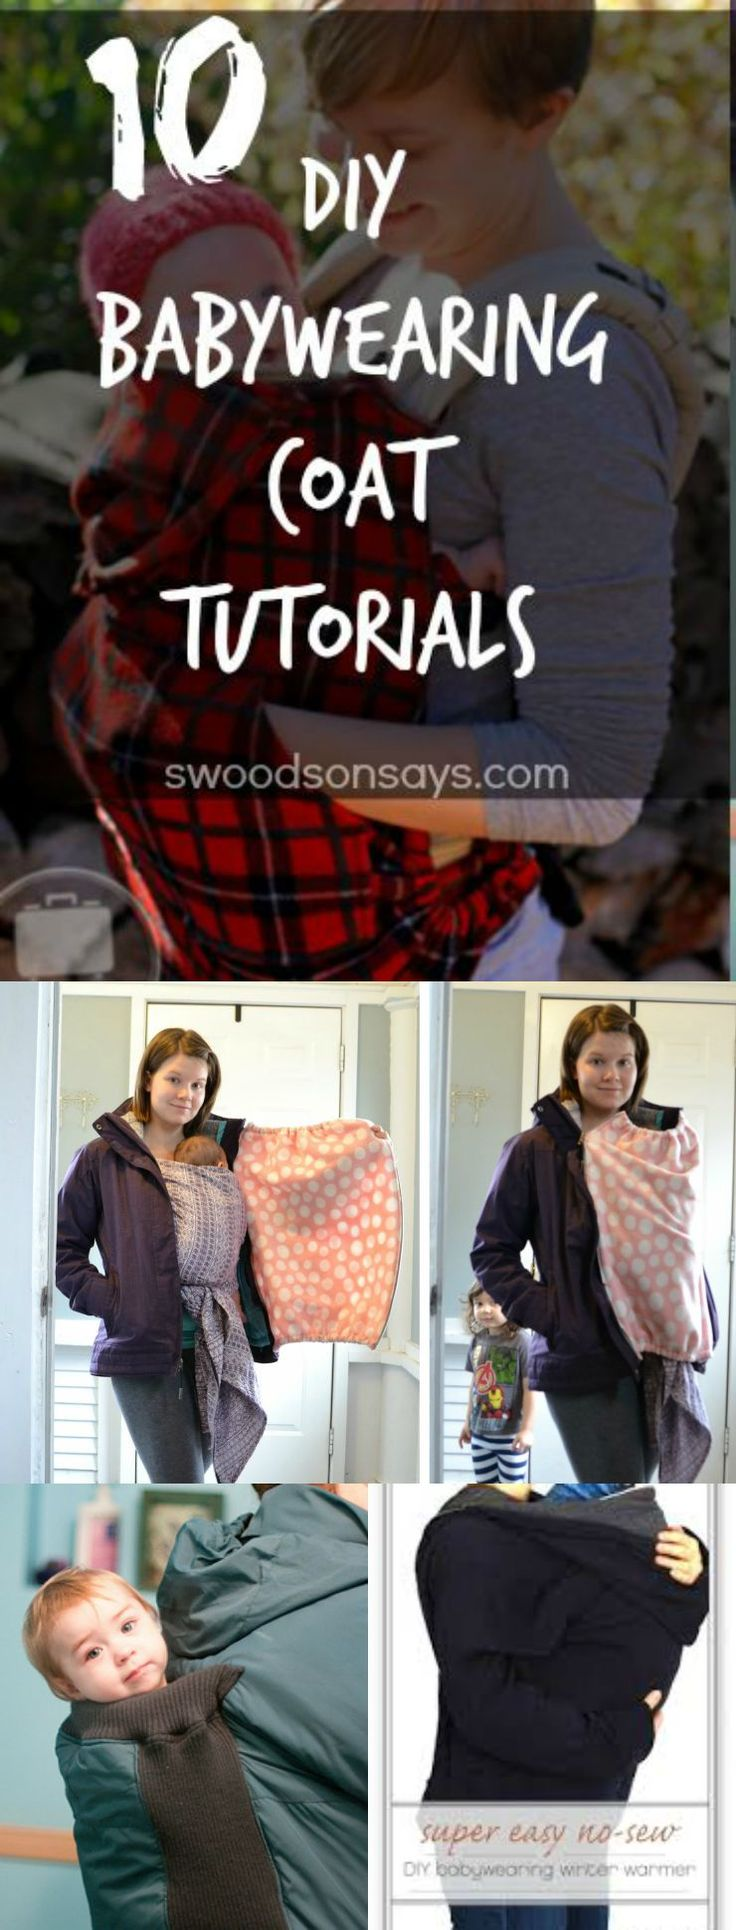 DIY Babywearing Coat Tutorials and Hacks